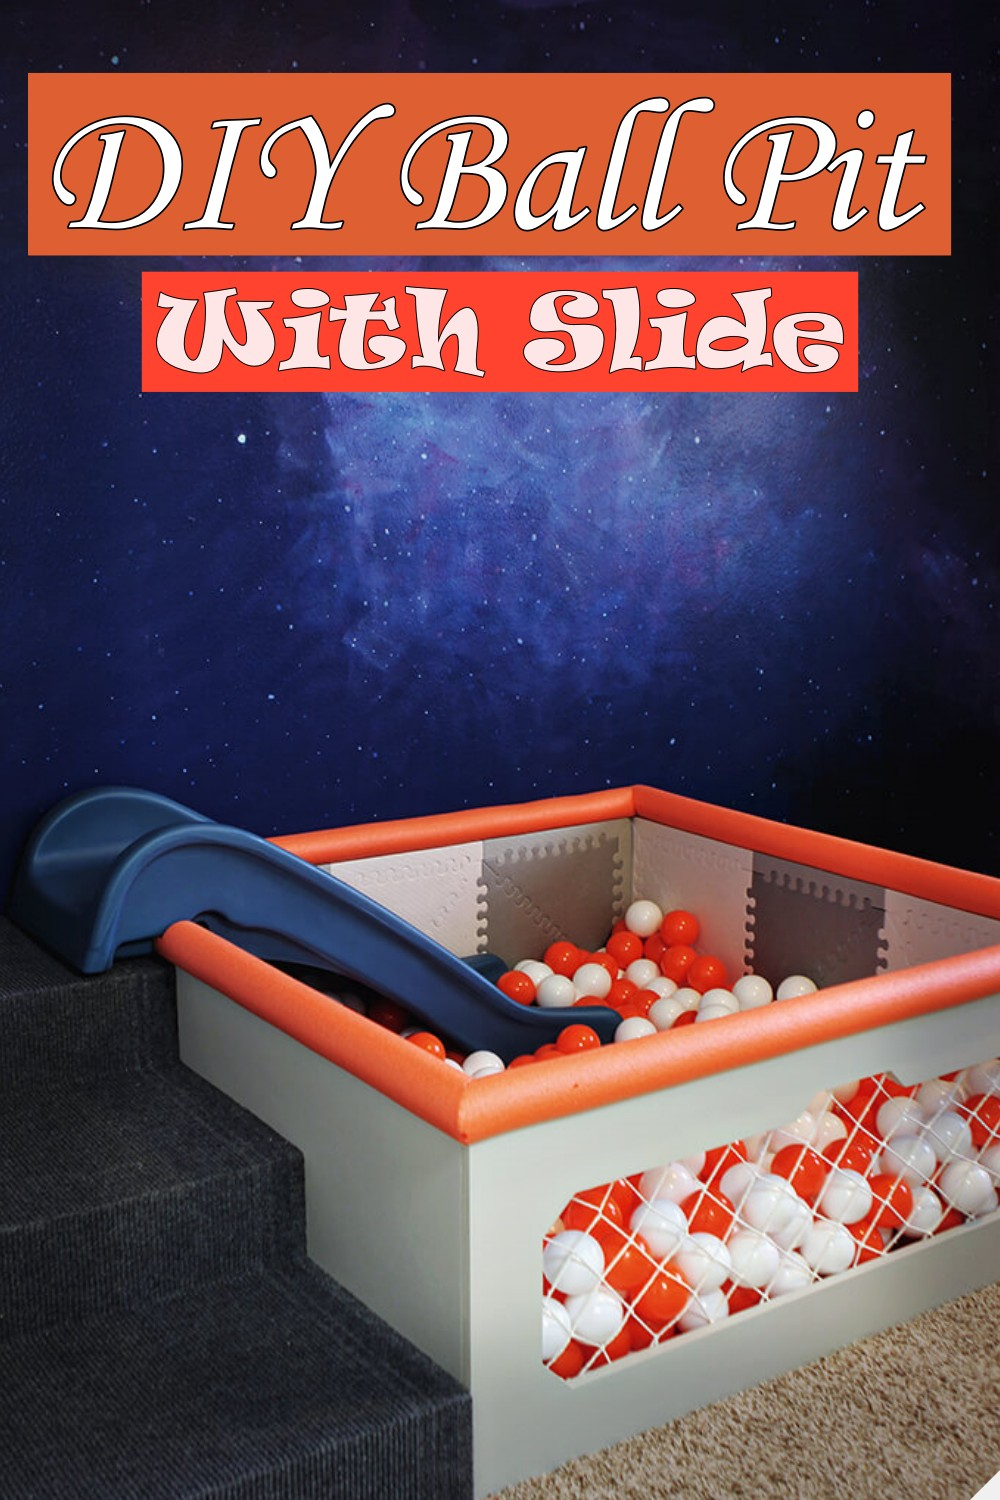 DIY Ball Pit With Slide